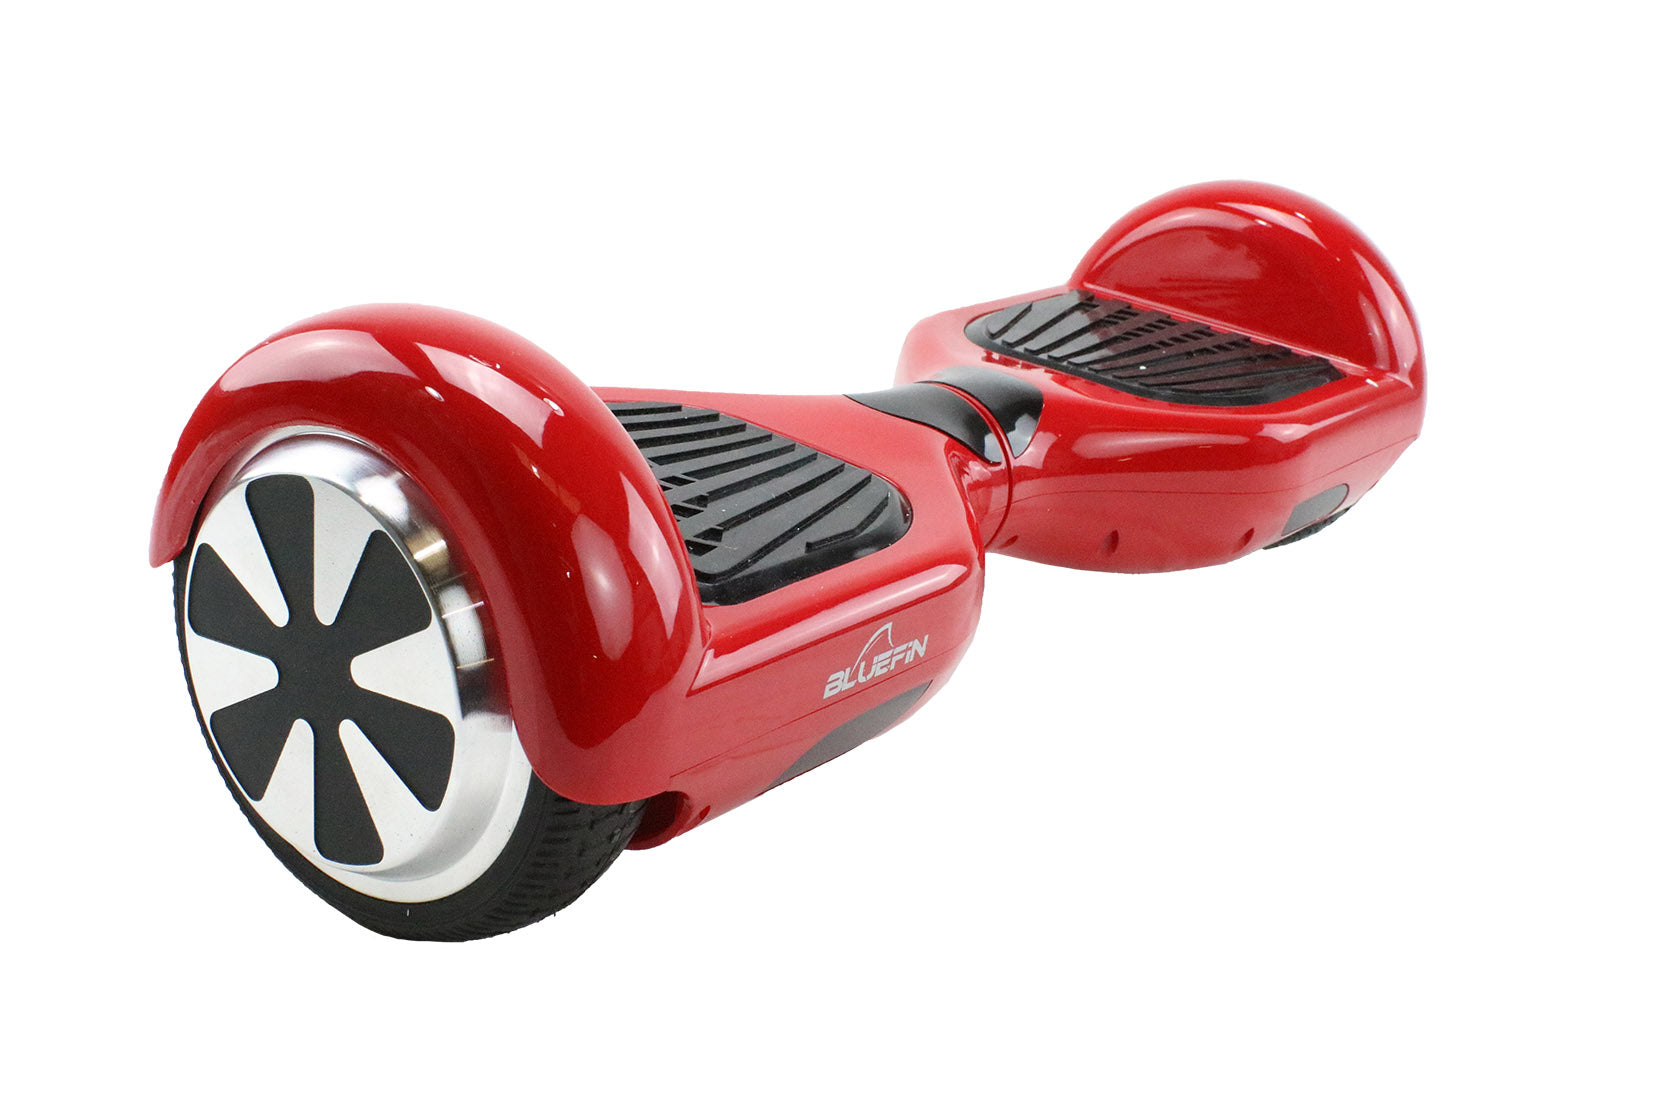 REFURBISHED Bluefin™ 6.5″ RED CLASSIC HOVERBOARD + SILI OFFROAD SUSPENSION HOVERKART BUNDLE